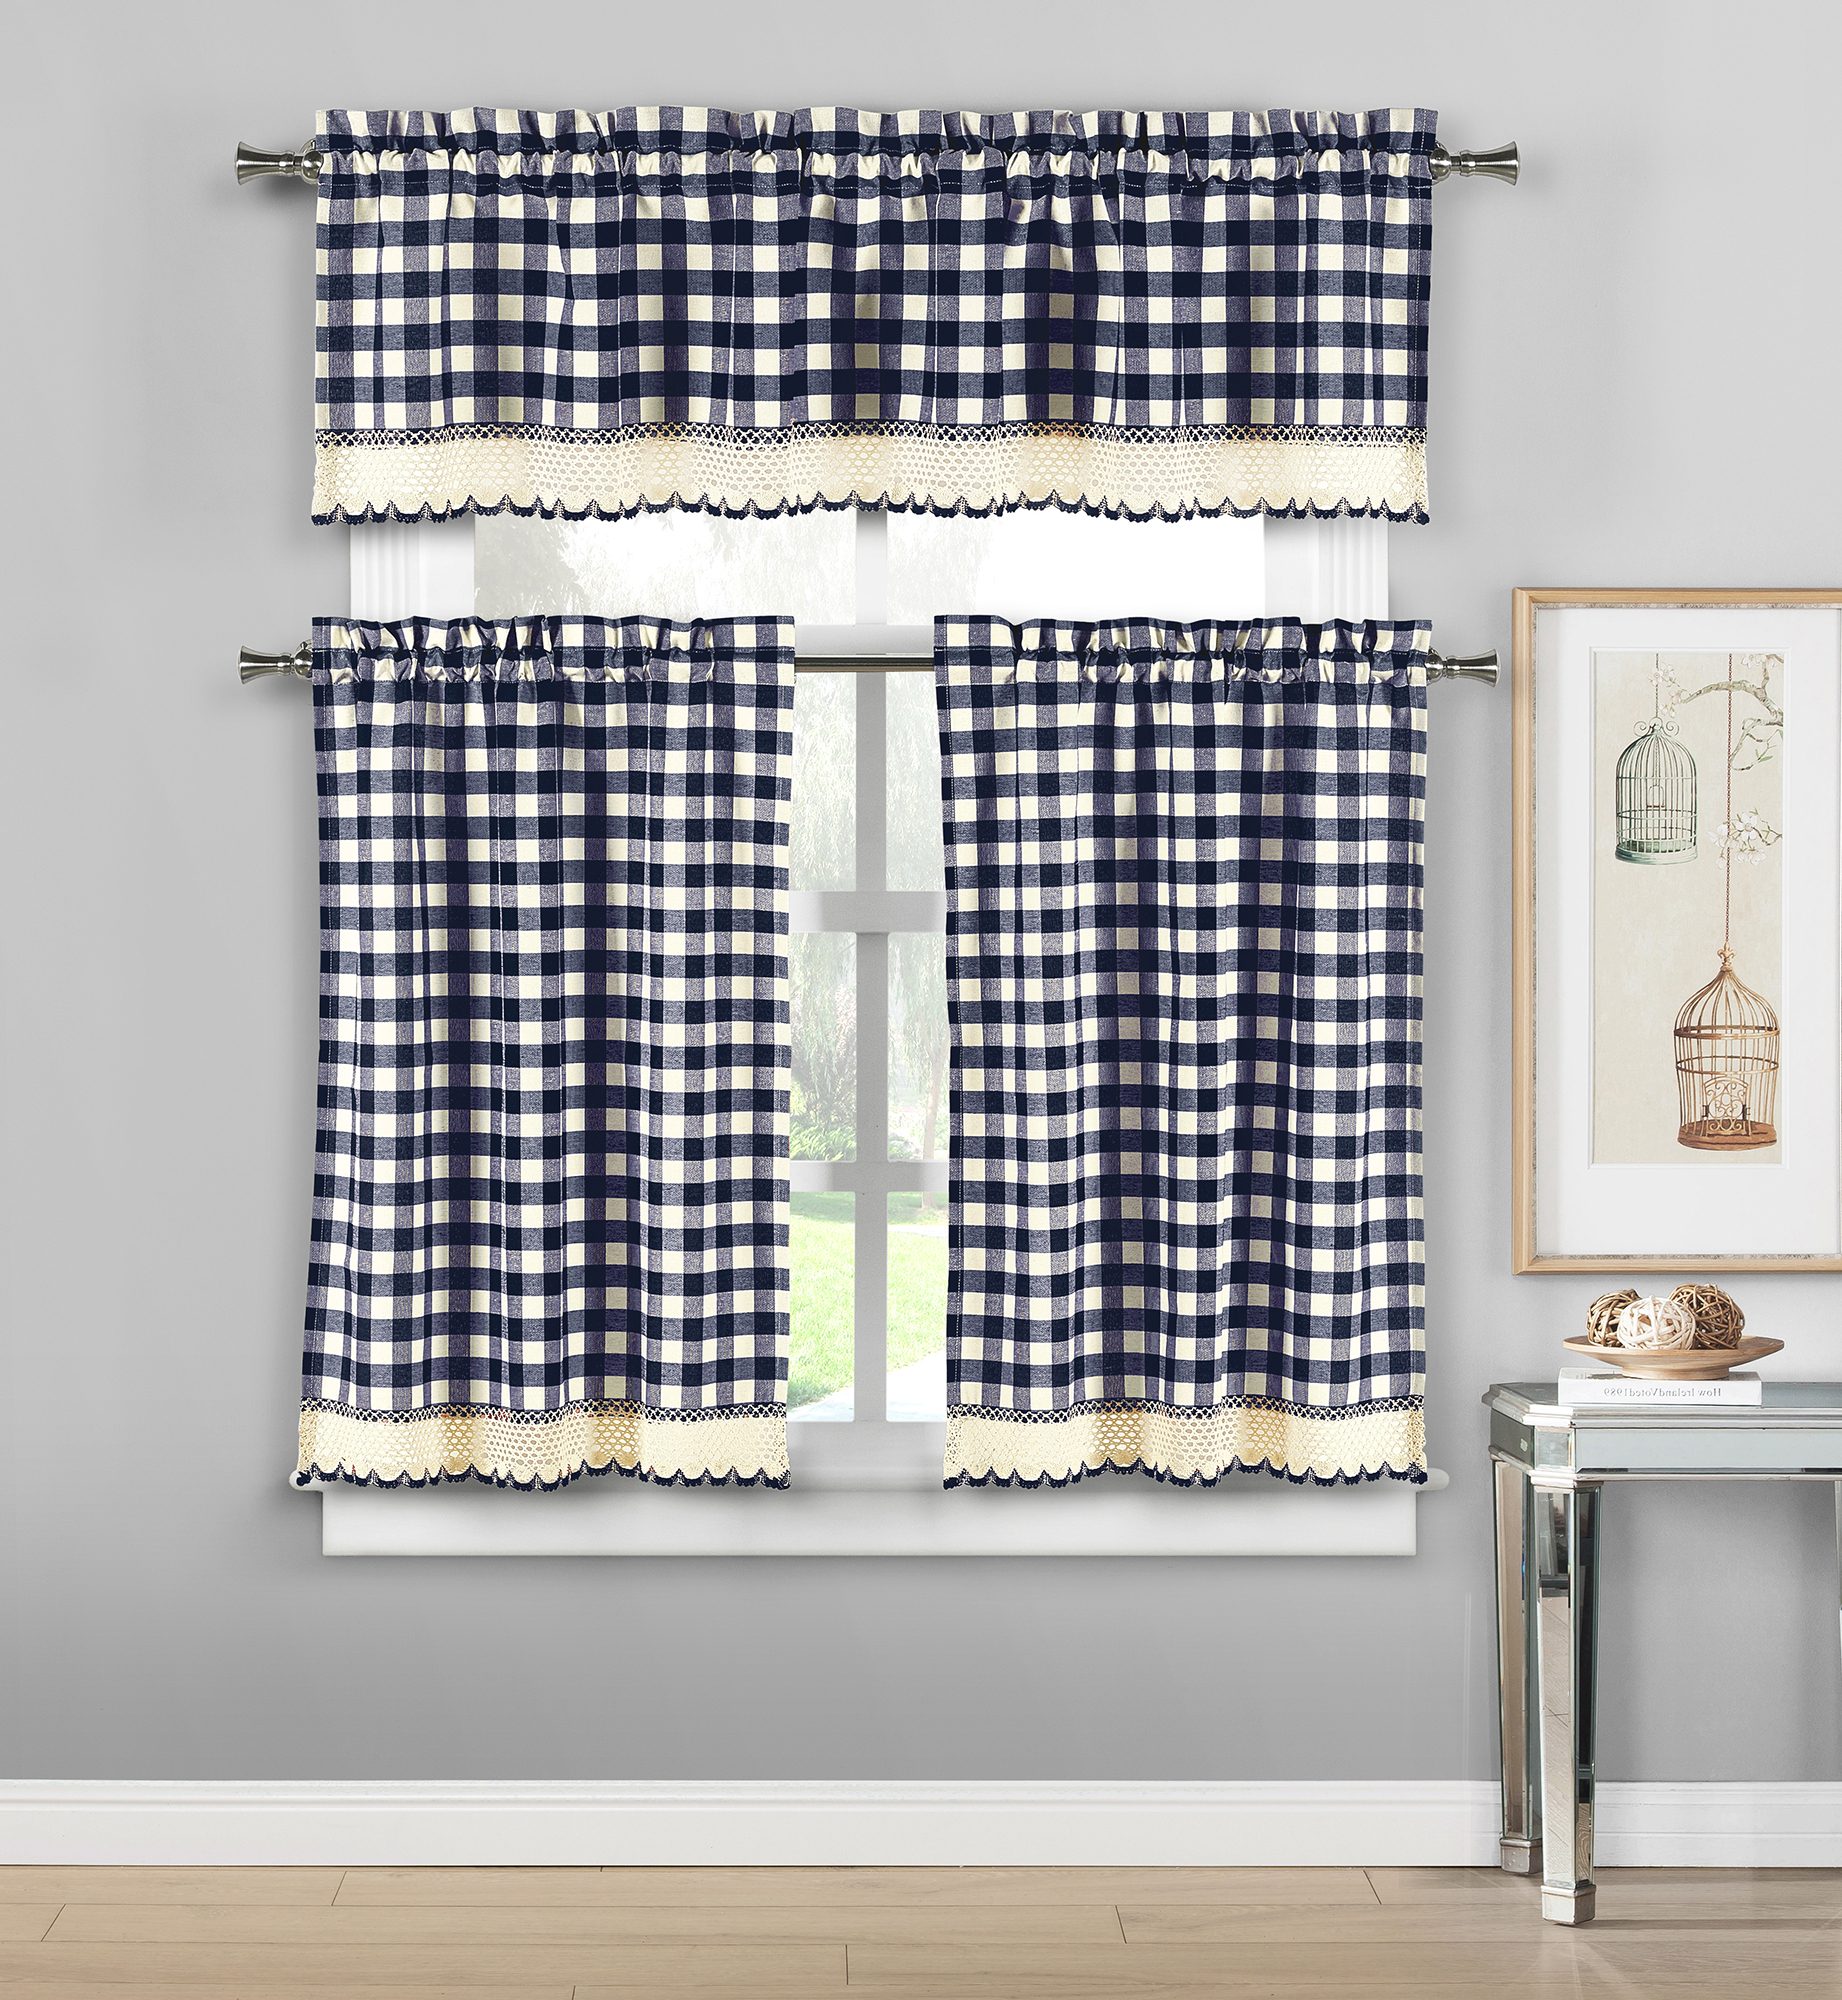 2020 Details About Plaid Checkered Crochet Cotton Blend 3pc Window Curtain Kitchen Tier & Valance In Cotton Lace 5 Piece Window Tier And Swag Sets (View 17 of 20)